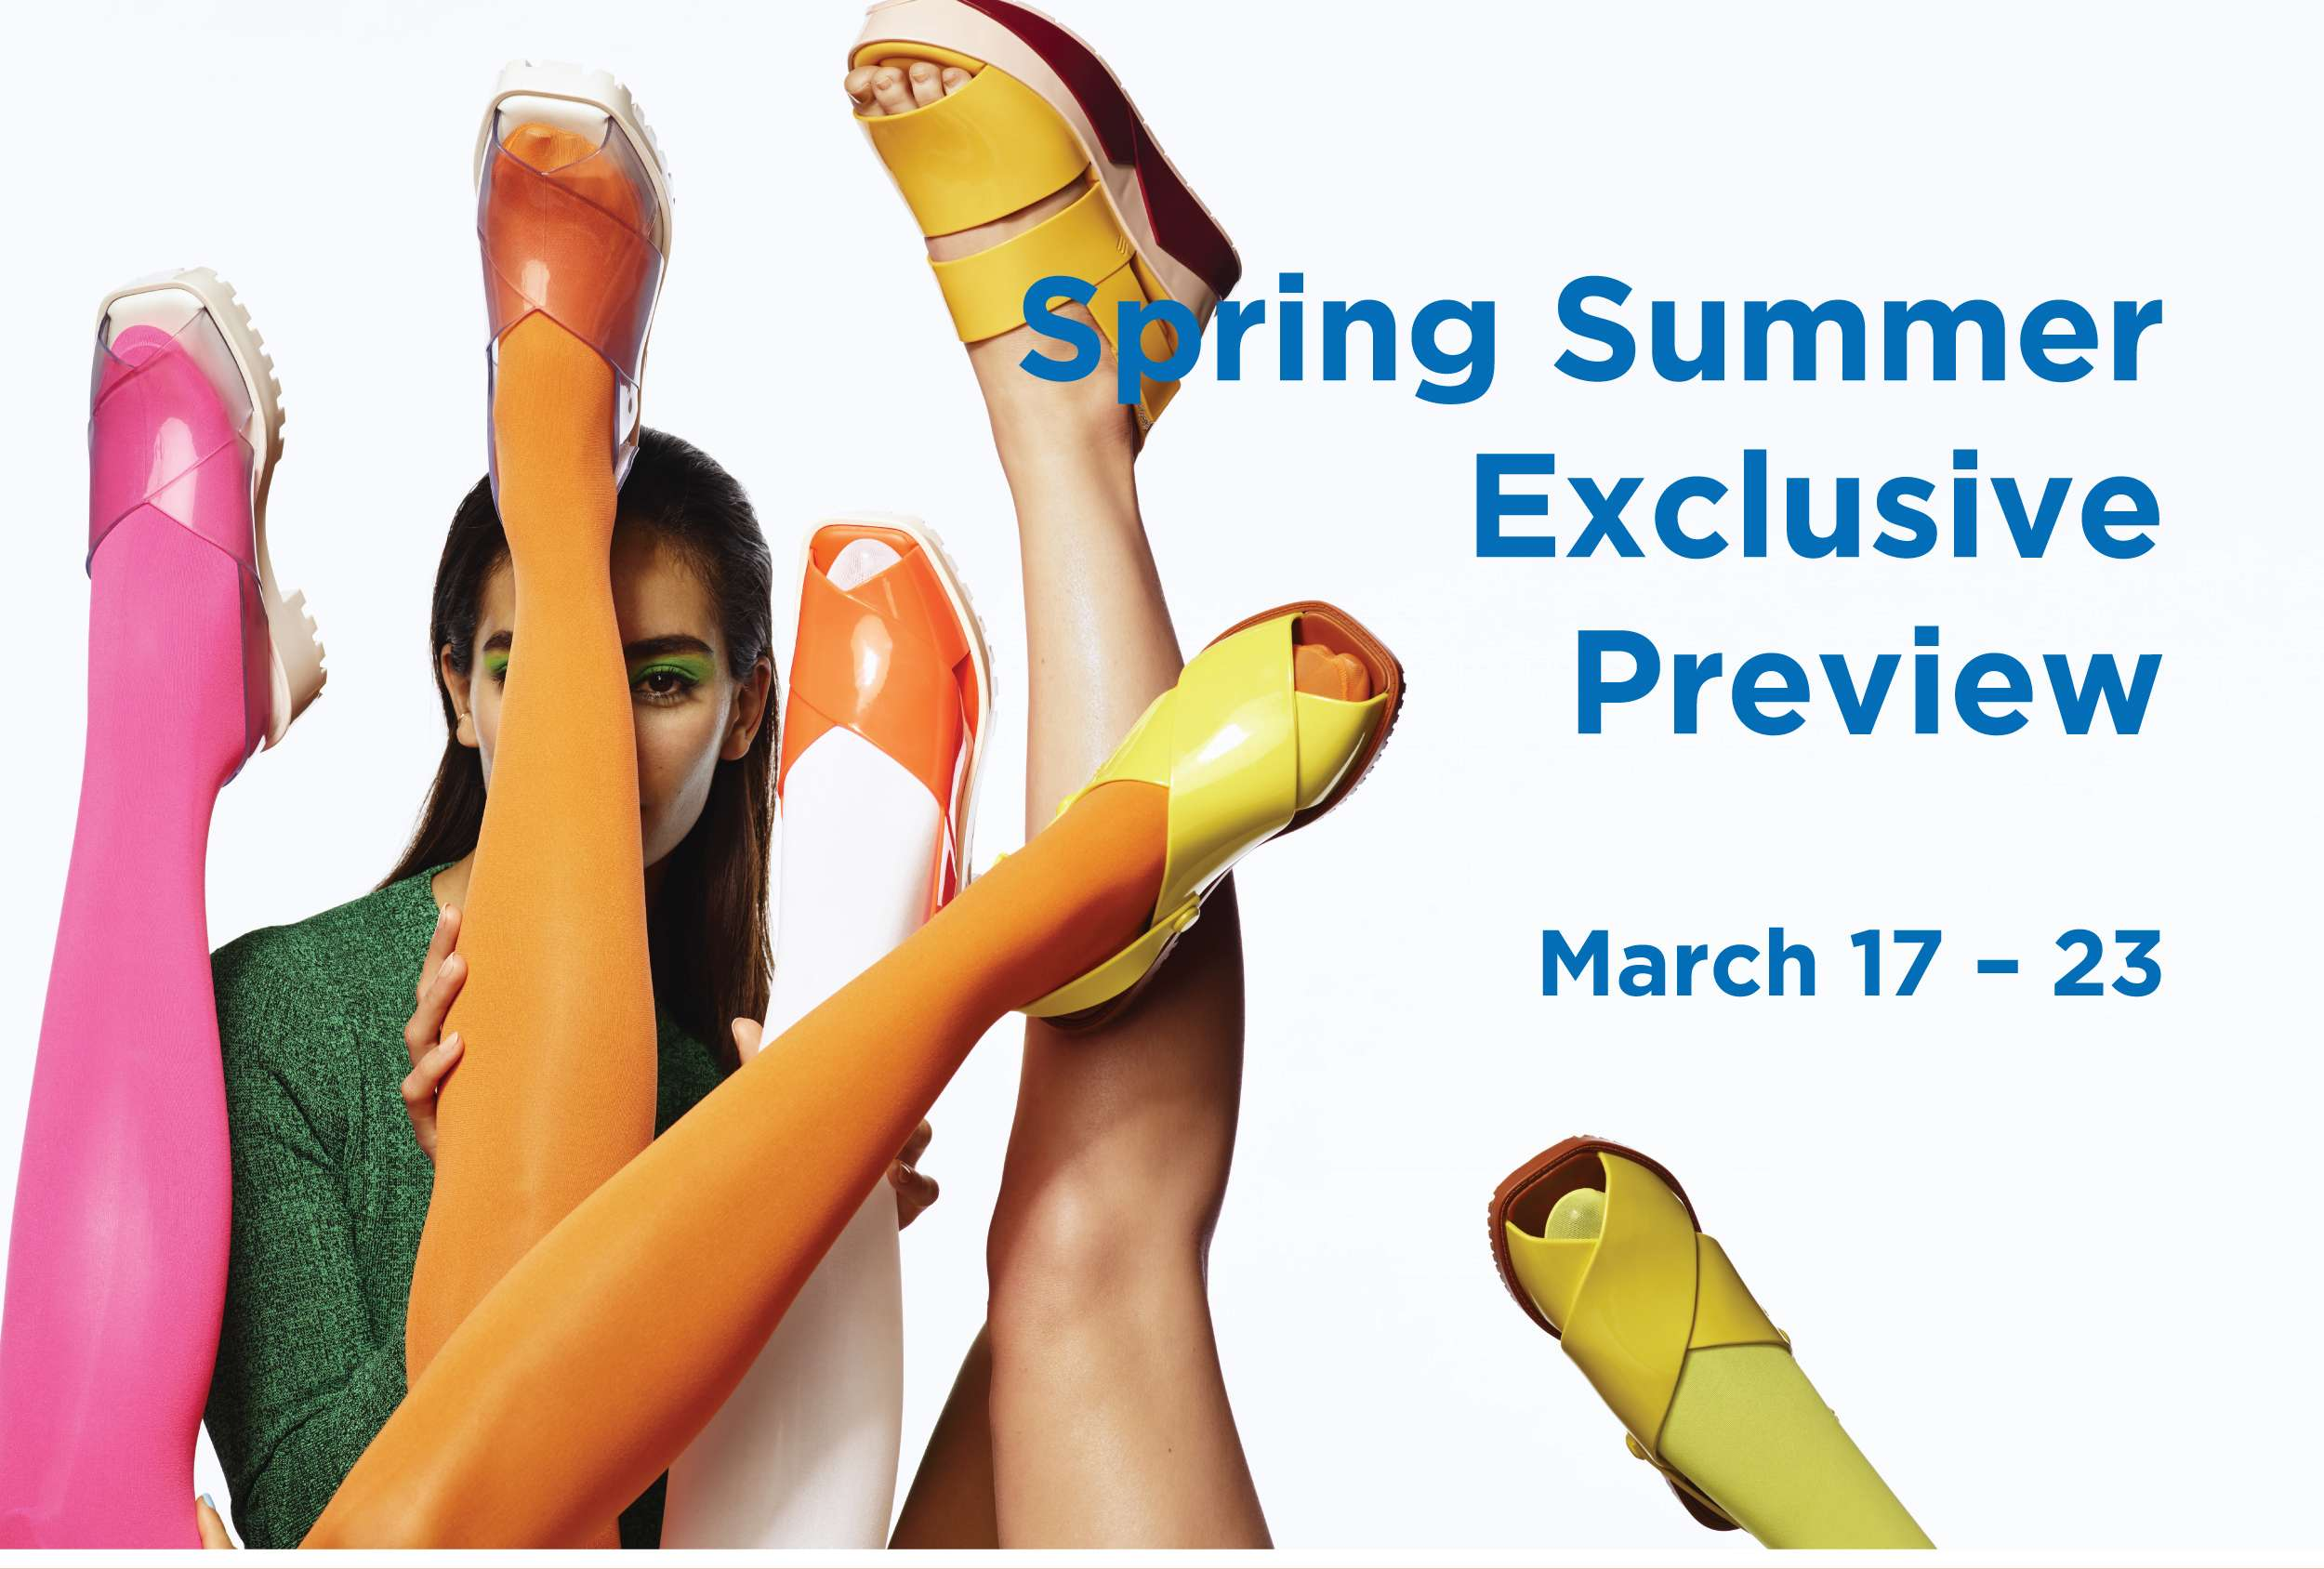 melissa spring/summer exclusive preview